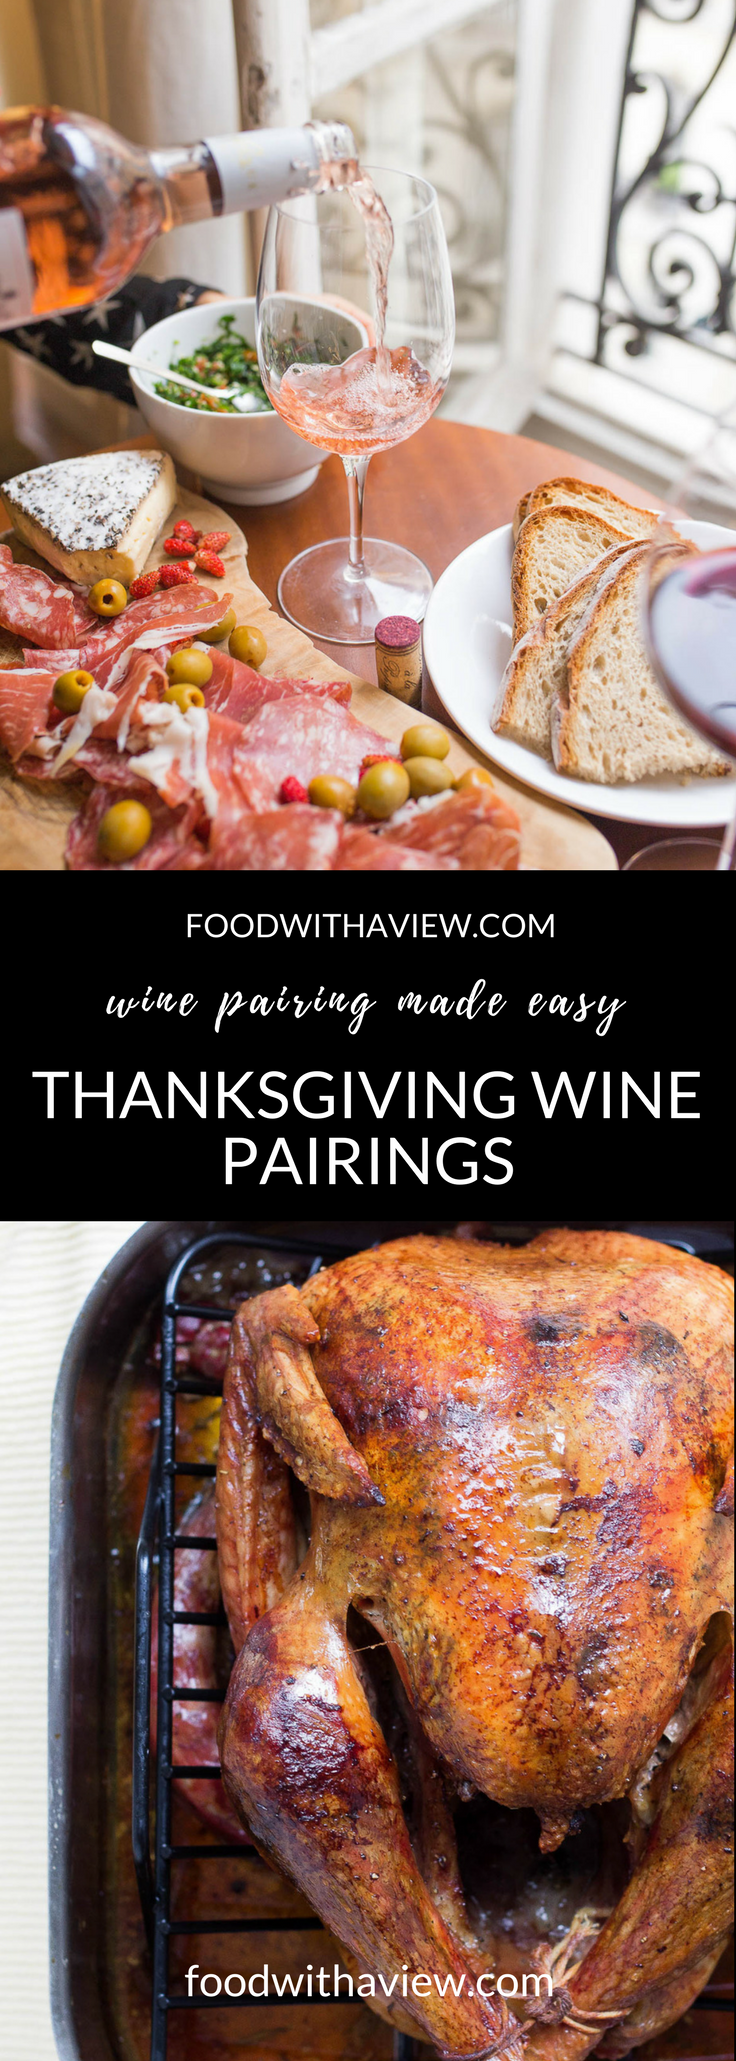 How to pair food and wine for Thanksgiving Day on foodwithaview.com